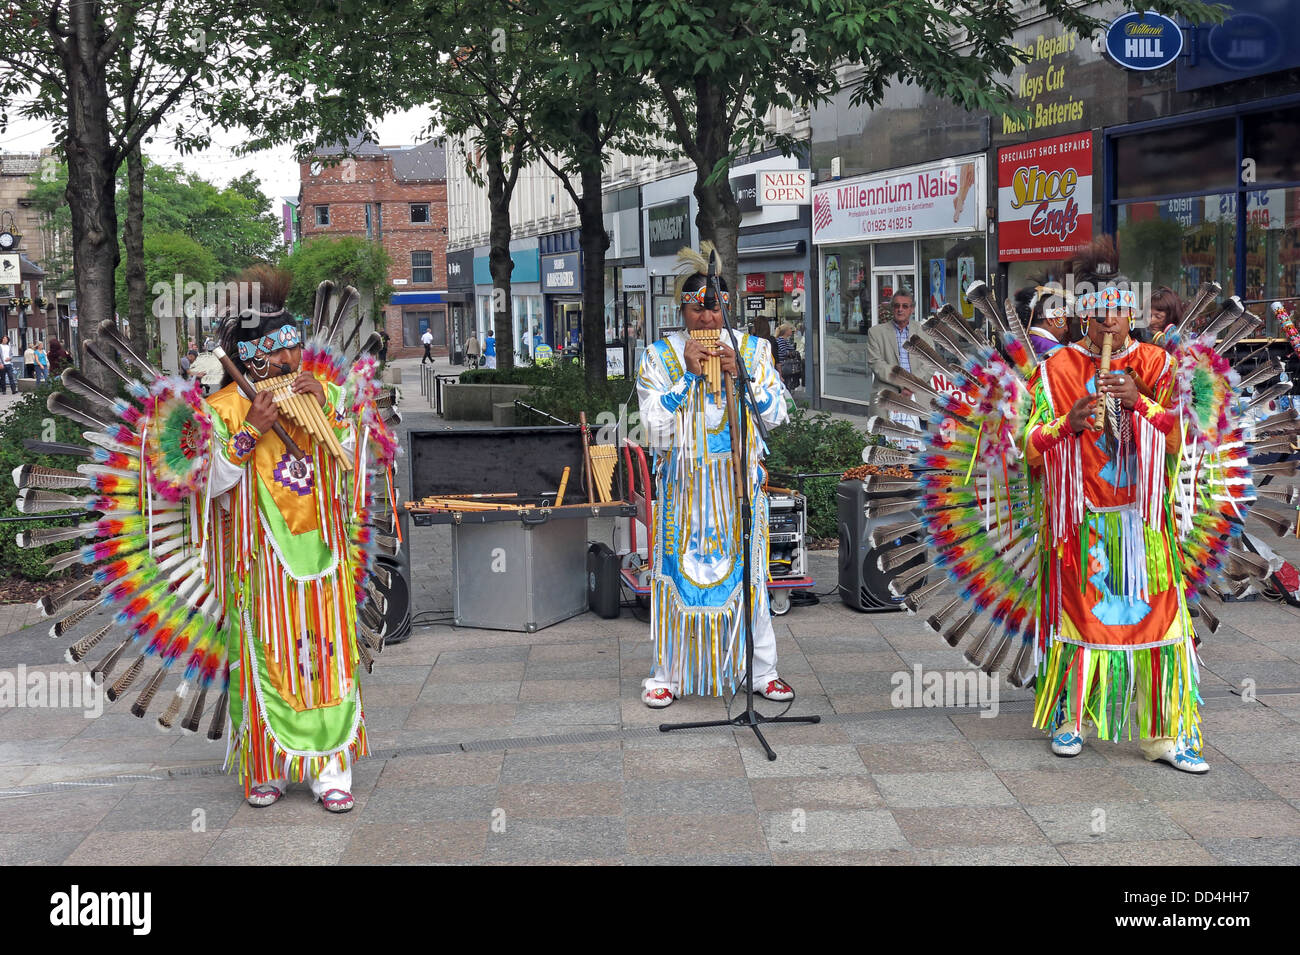 Warrington town centre,Cheshire,England,UK,GB,European,Peru,colourful,colorful,costumes,dancer,player,players,city,village,shopping,st,street,streets,playing,music,pan,pipe,panpipe,panpipes,doing,a,show,performing,red,yellow,green,golden,square,WBC,borough,council,local,authority,busking,beg,gotonysmith,cash,begging,begger,entertainment,fun,joy,funny,cheering,up,shoppers,Buy Pictures of,Buy Images Of